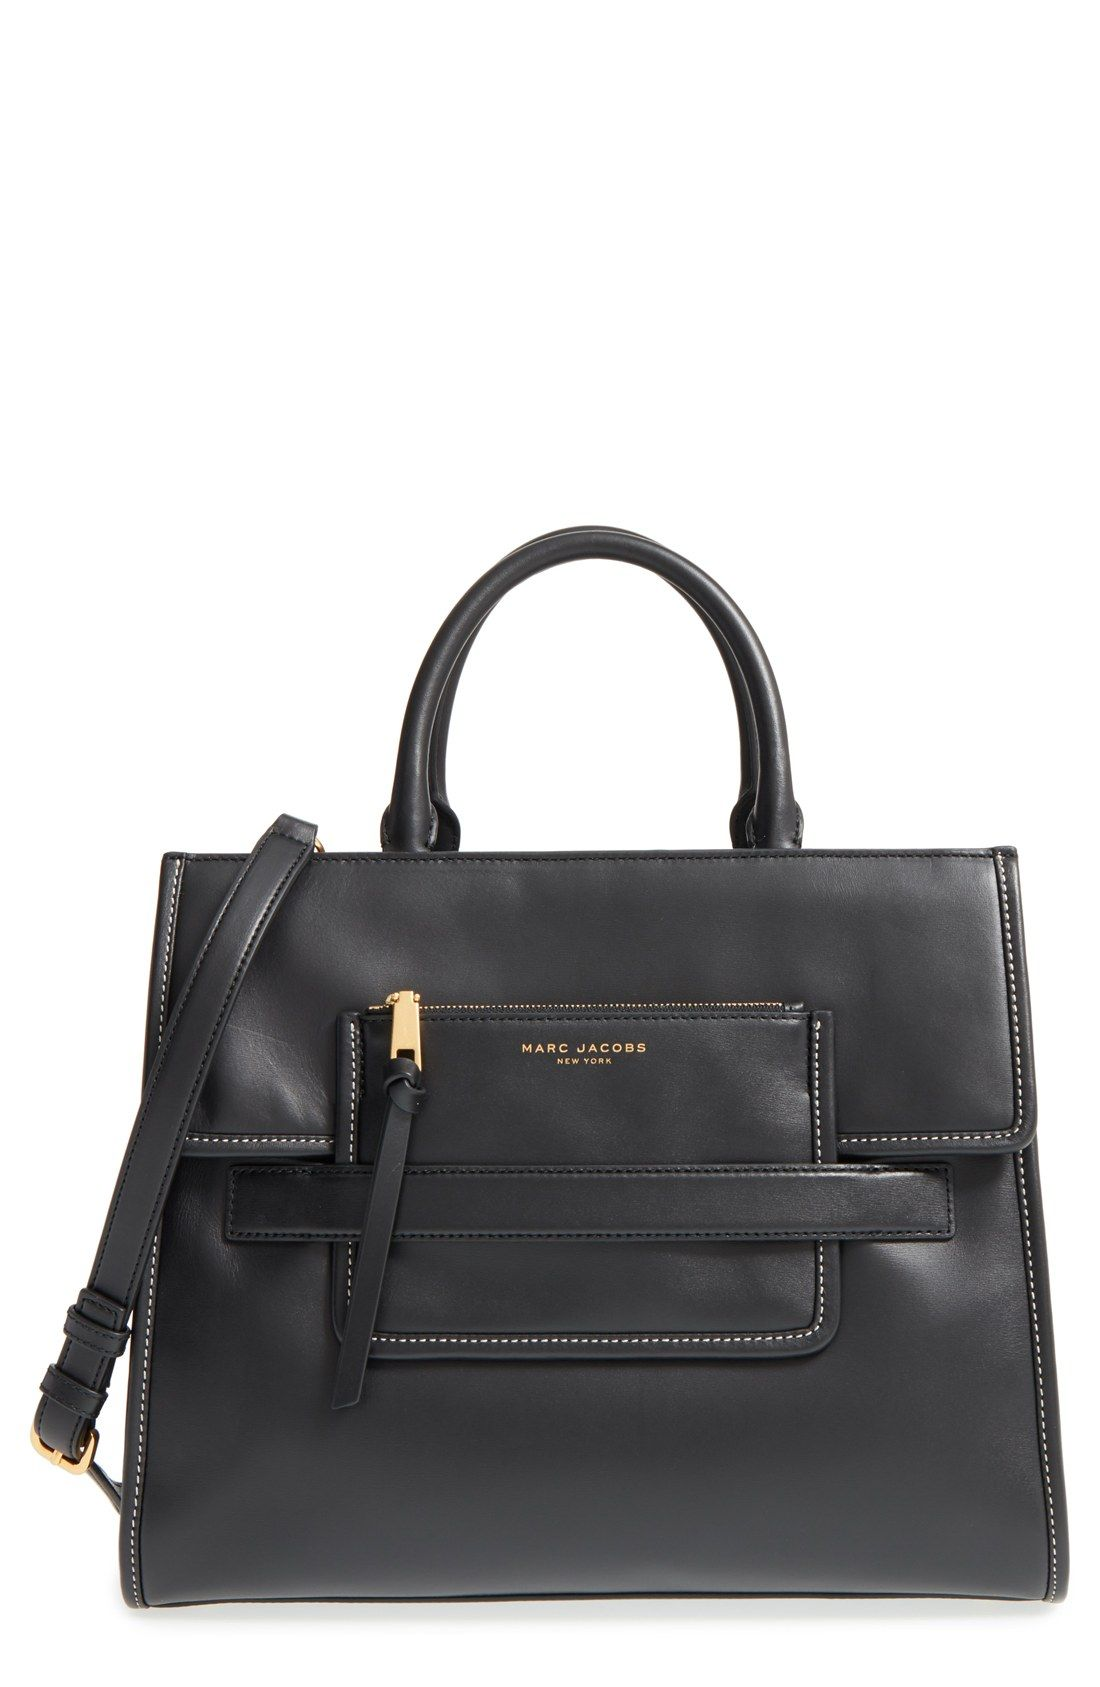 MARC JACOBS 'Madison North South' Leather Tote